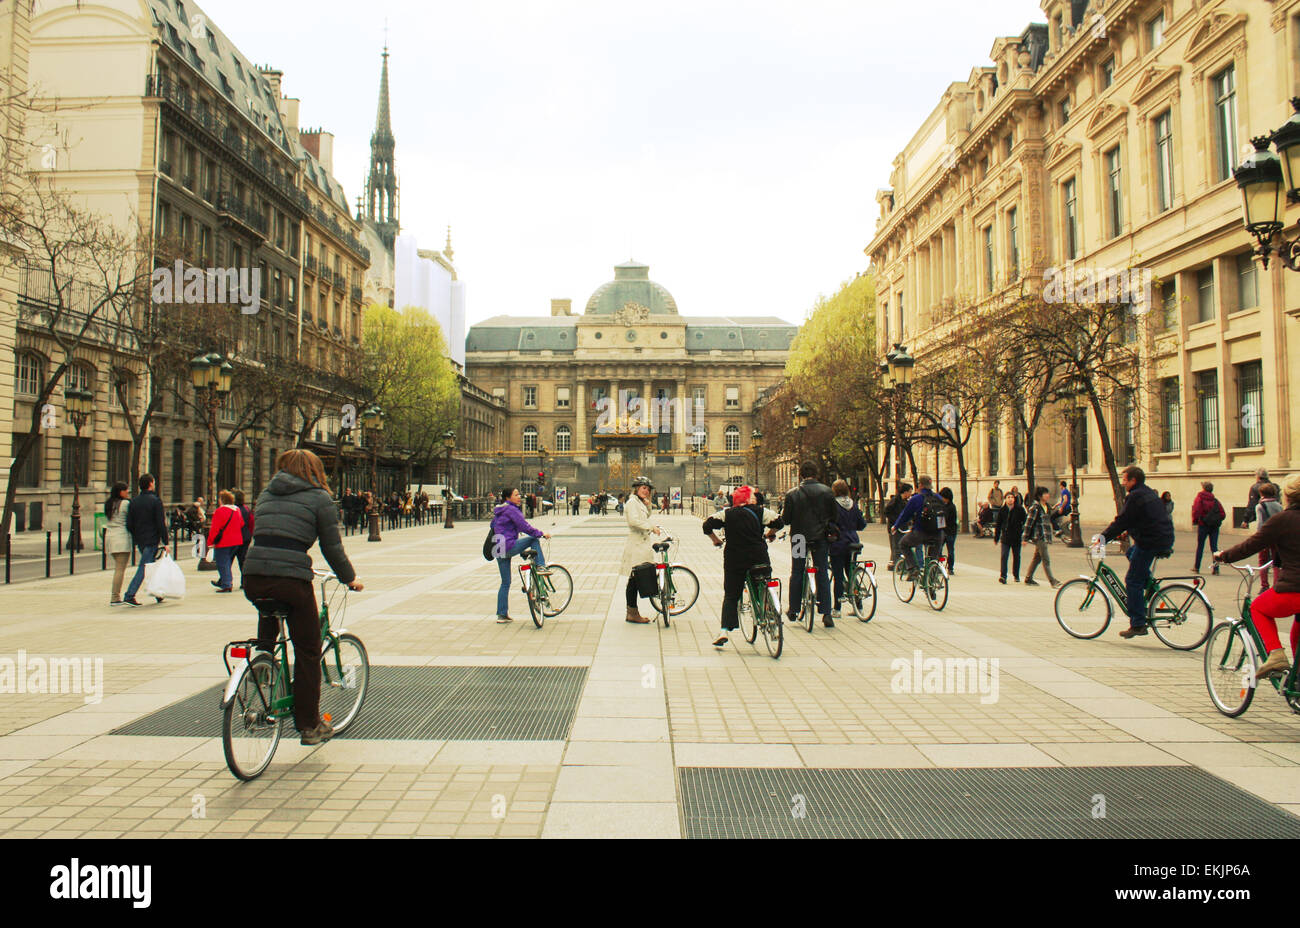 Cyclists in Paris city, France Stock Photo